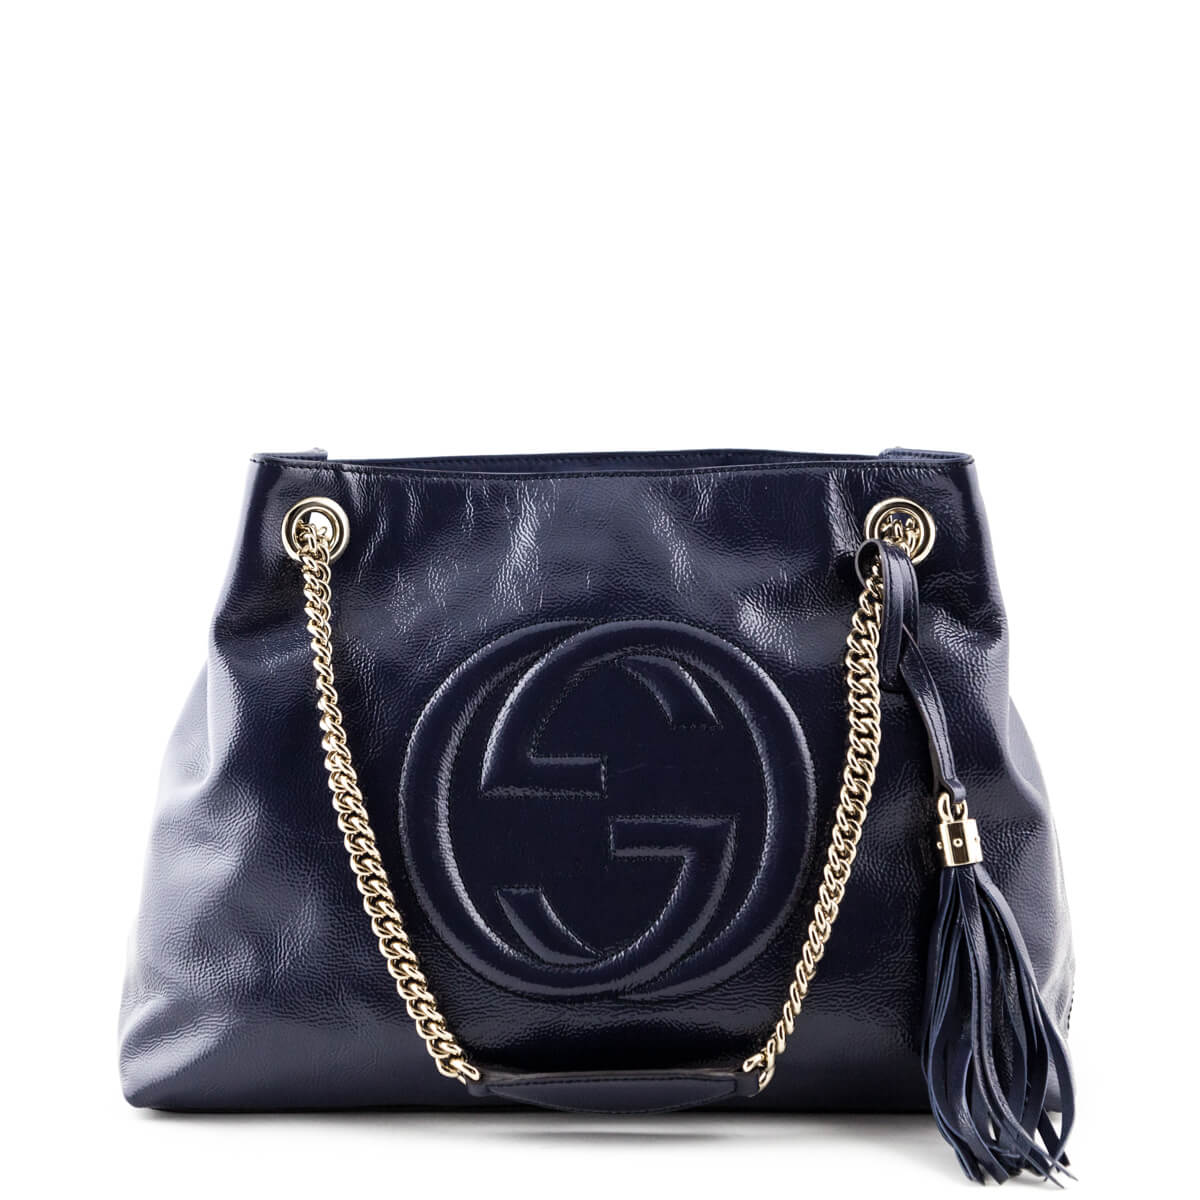 8194e1666fc Gucci Midnight Blue Patent Medium Soho Shoulder Bag - LOVE that BAG - Preowned  Authentic Designer ...